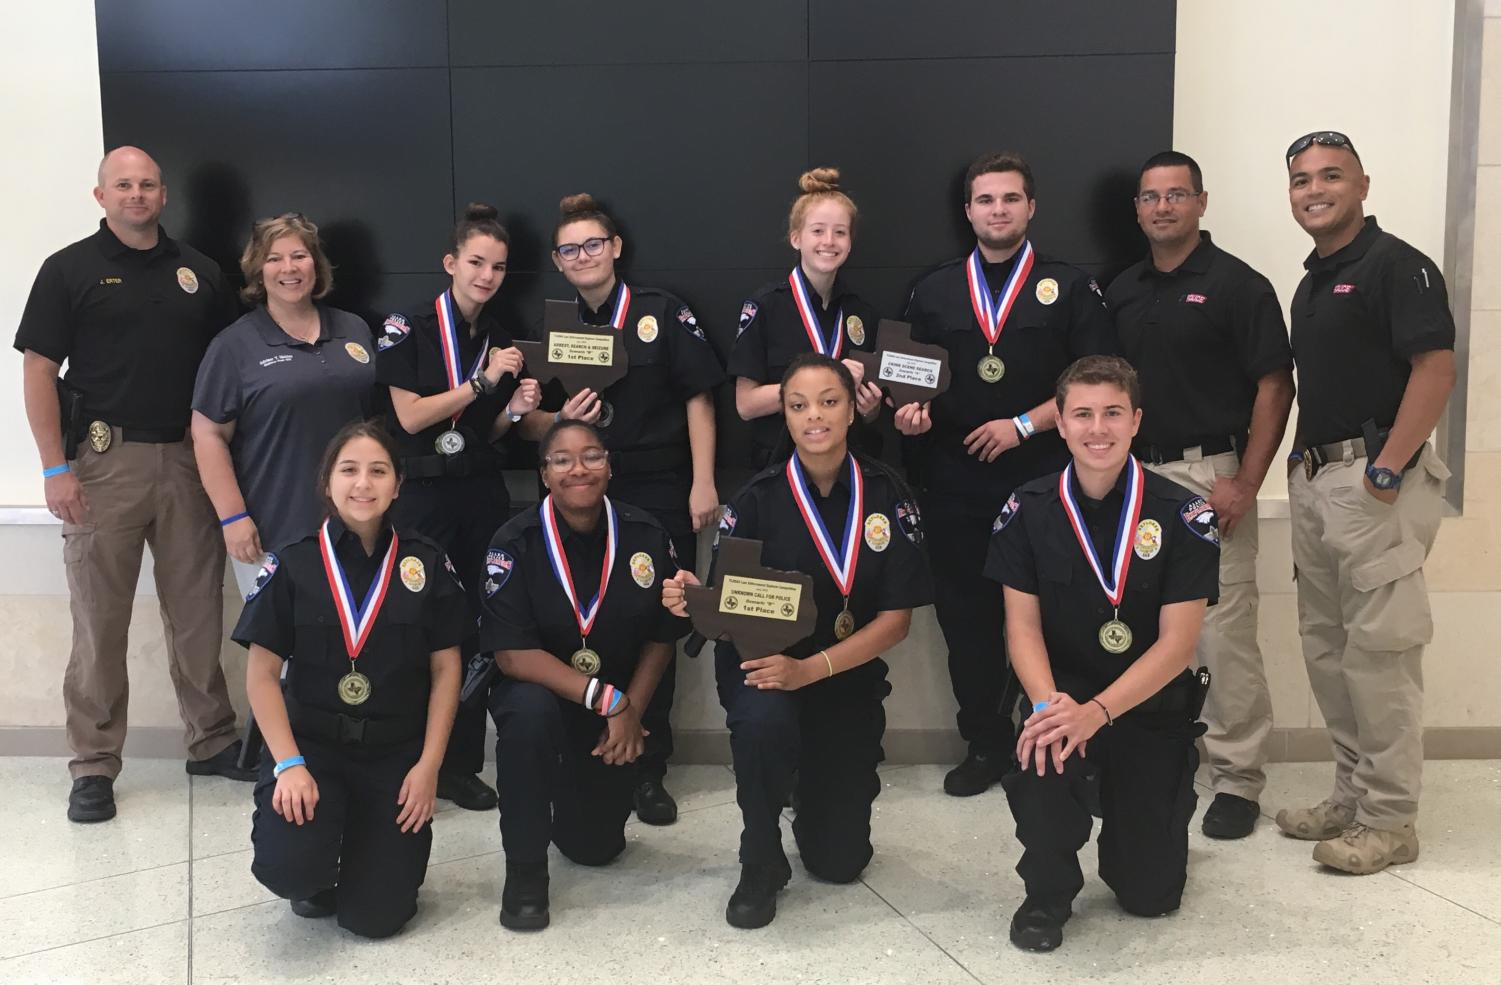 Front row Alexa Murillo, Jalen Doughty, Daylah Washington and Vincent Saia  Back Row: Sgt Jason Erter, Mrs Nickles, Kathryn Wilson, Cameran La Tour, Ashleigh Browne, Chase Miller, Officer Anthony Garcia and Officer Christian Centeno